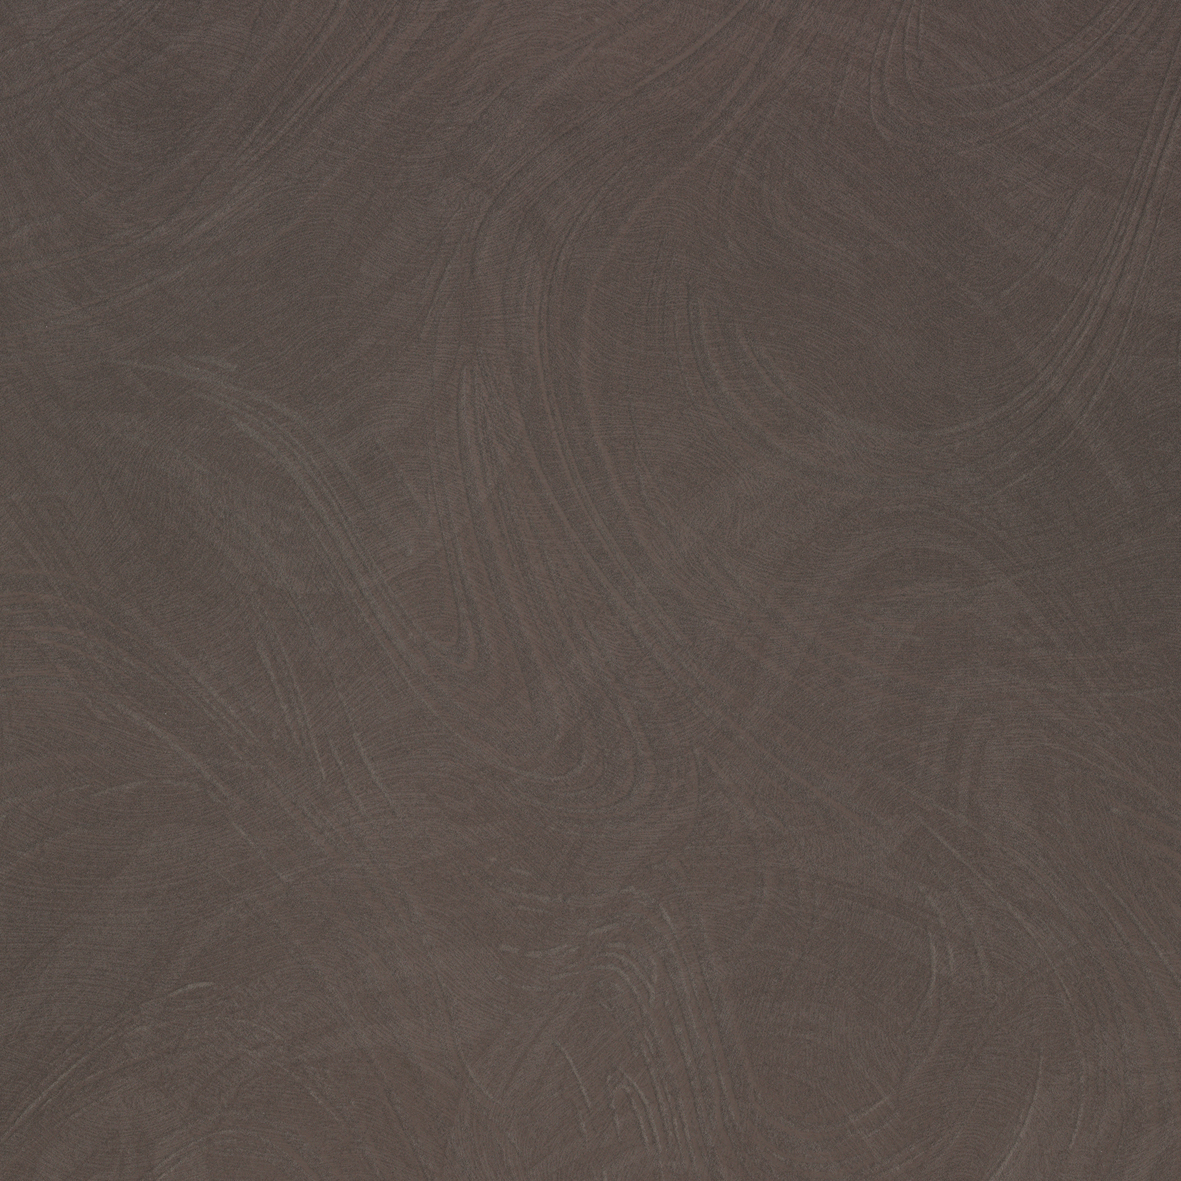 La Fabbrica 5th Avenue Chocolate 8L62 Boden-/Wandfliese 80x80 Lappato